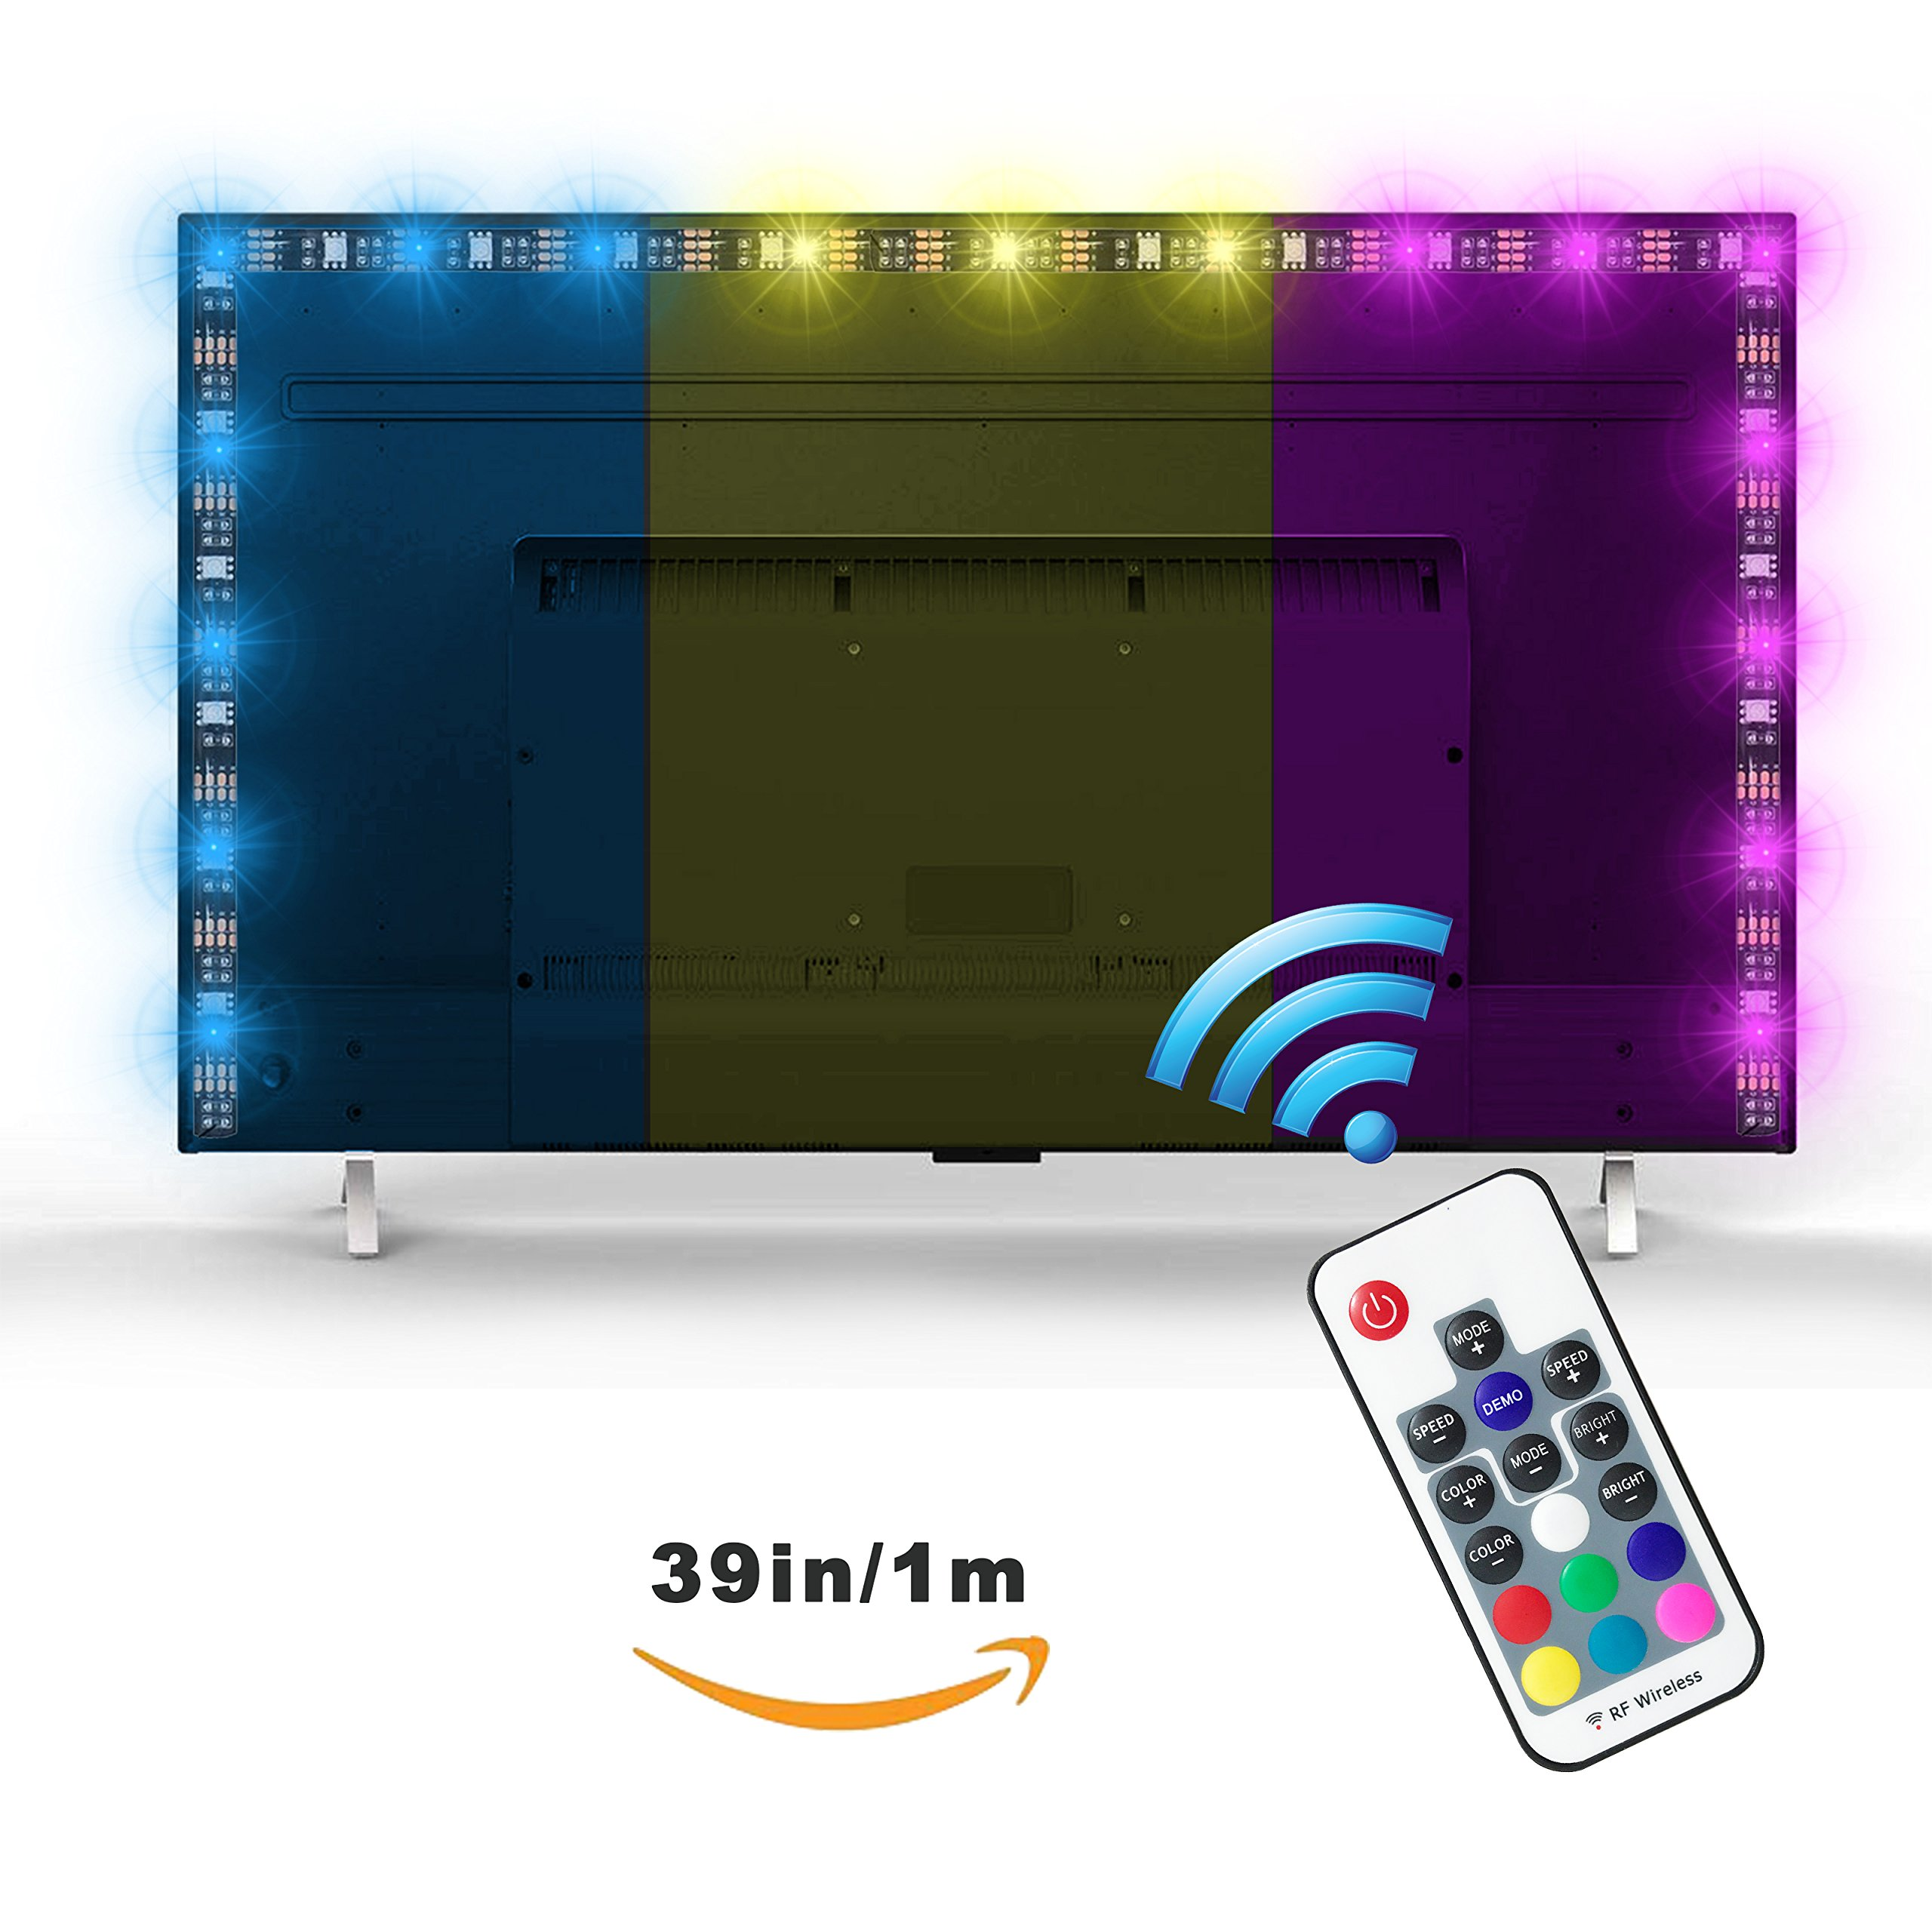 Exgreem Neon Accent LED Strips Bias Backlight RGB Lights with Remote Control for HDTV, Flat Screen TV Accessories and Desktop PC, Multi Color (39 inches)